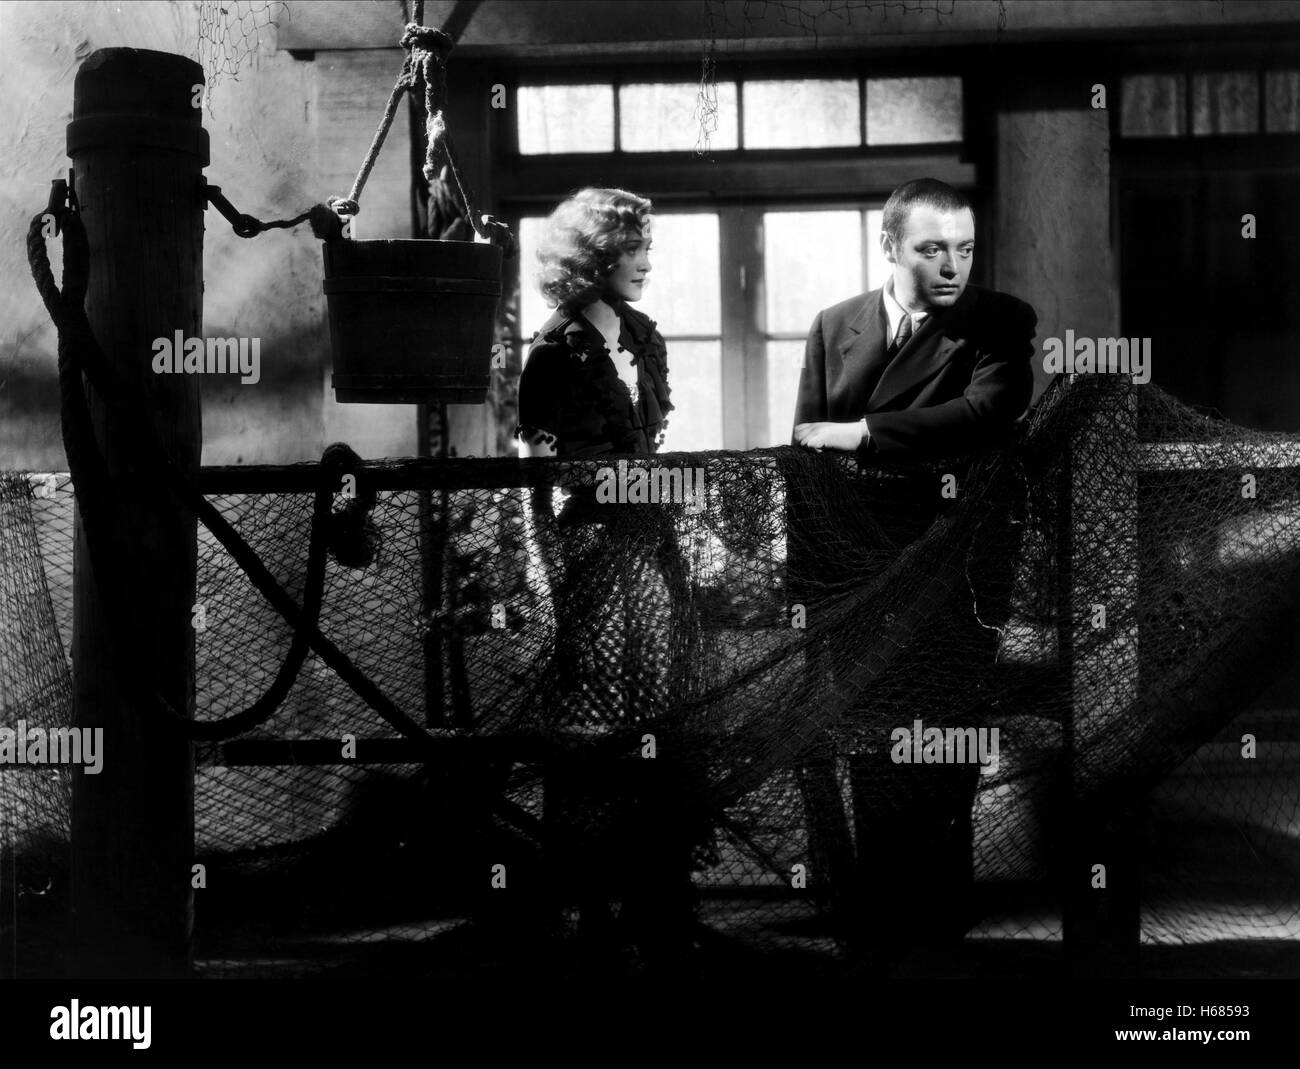 MARIAN MARSH, PETER LORRE, CRIME AND PUNISHMENT, 1935 - Stock Image